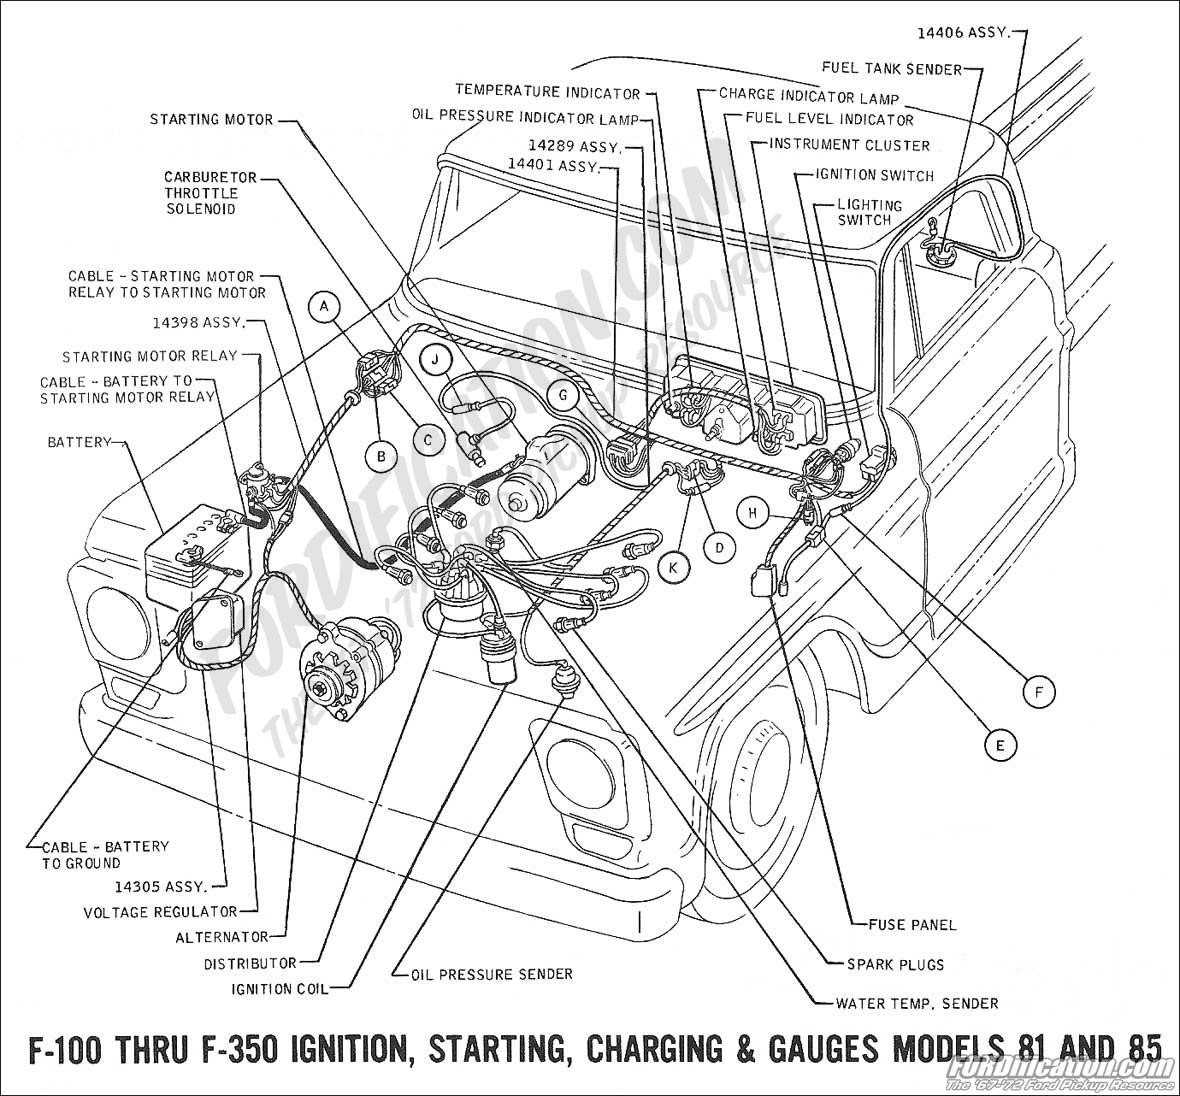 wiring 1969charging 1969 ford f100 wiring diagram 1969 chevrolet impala wiring diagram 1969 ford mustang ignition wiring diagram at n-0.co